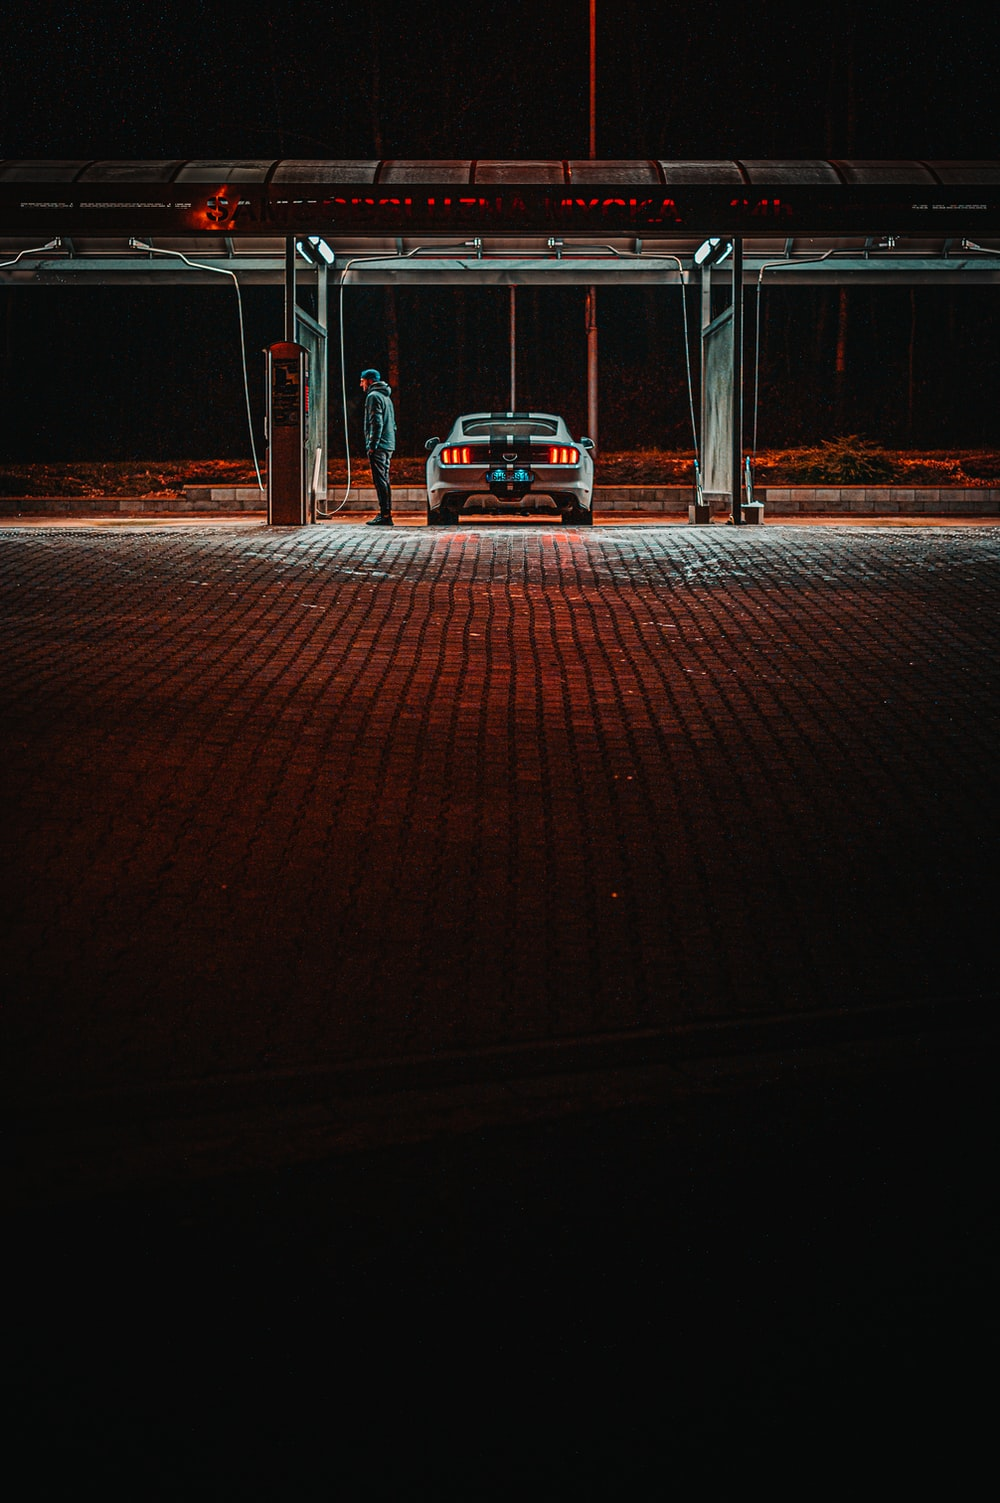 man standing near gasoline station beside vehicle during night time